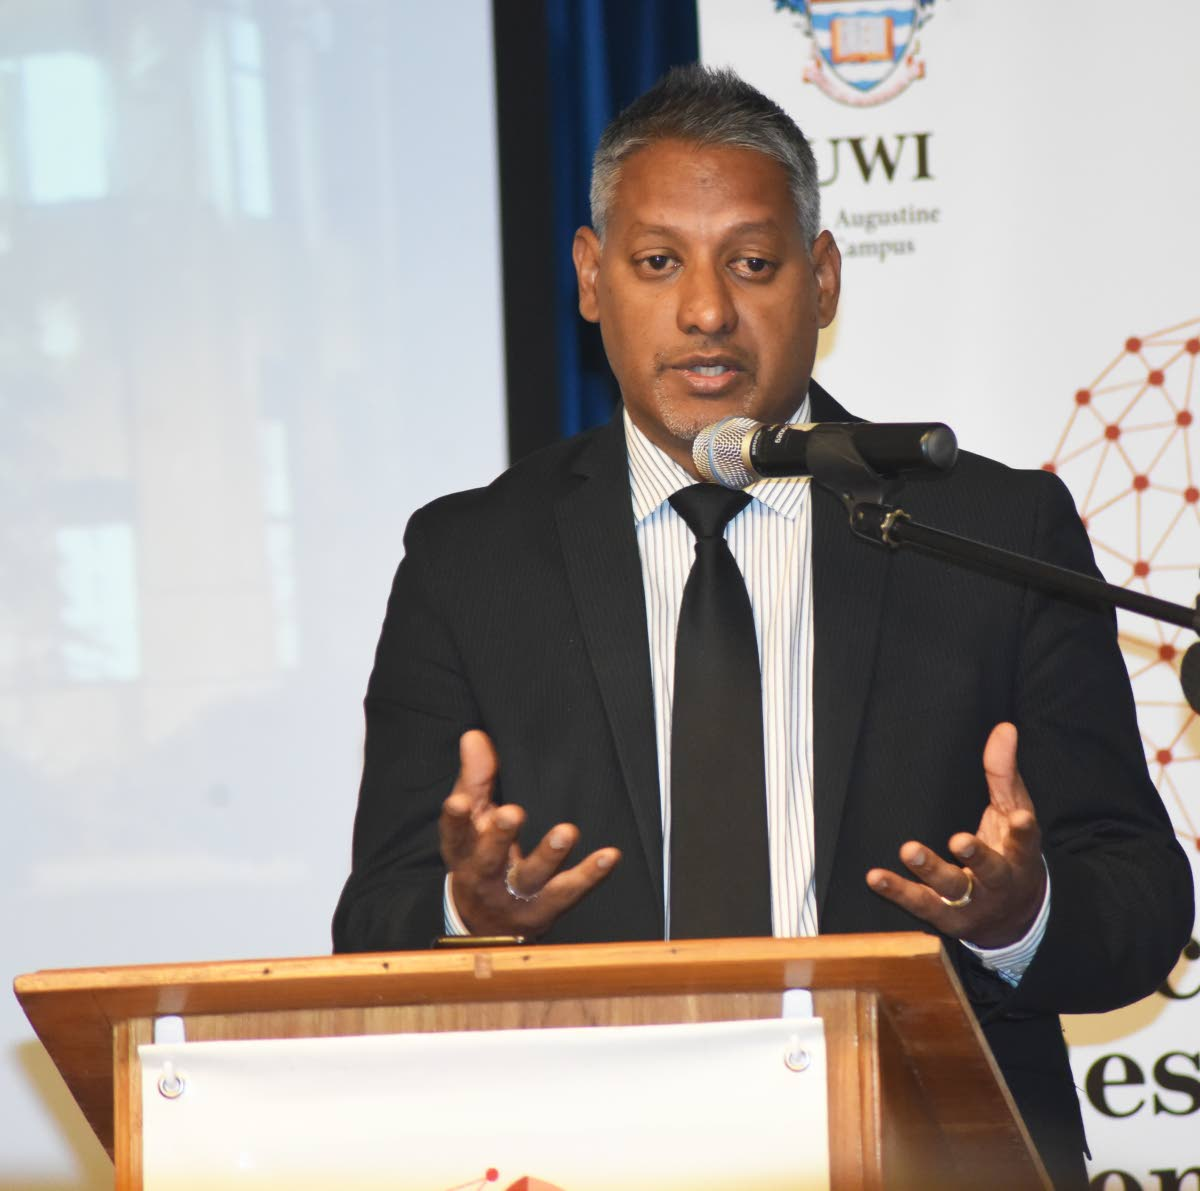 Agriculture Minister Clarence Rambharat speaks at the opening ceremony of the 2019 cocoa symposium at UWI on Wednesday. PHOTO BY KERWIN PIERRE